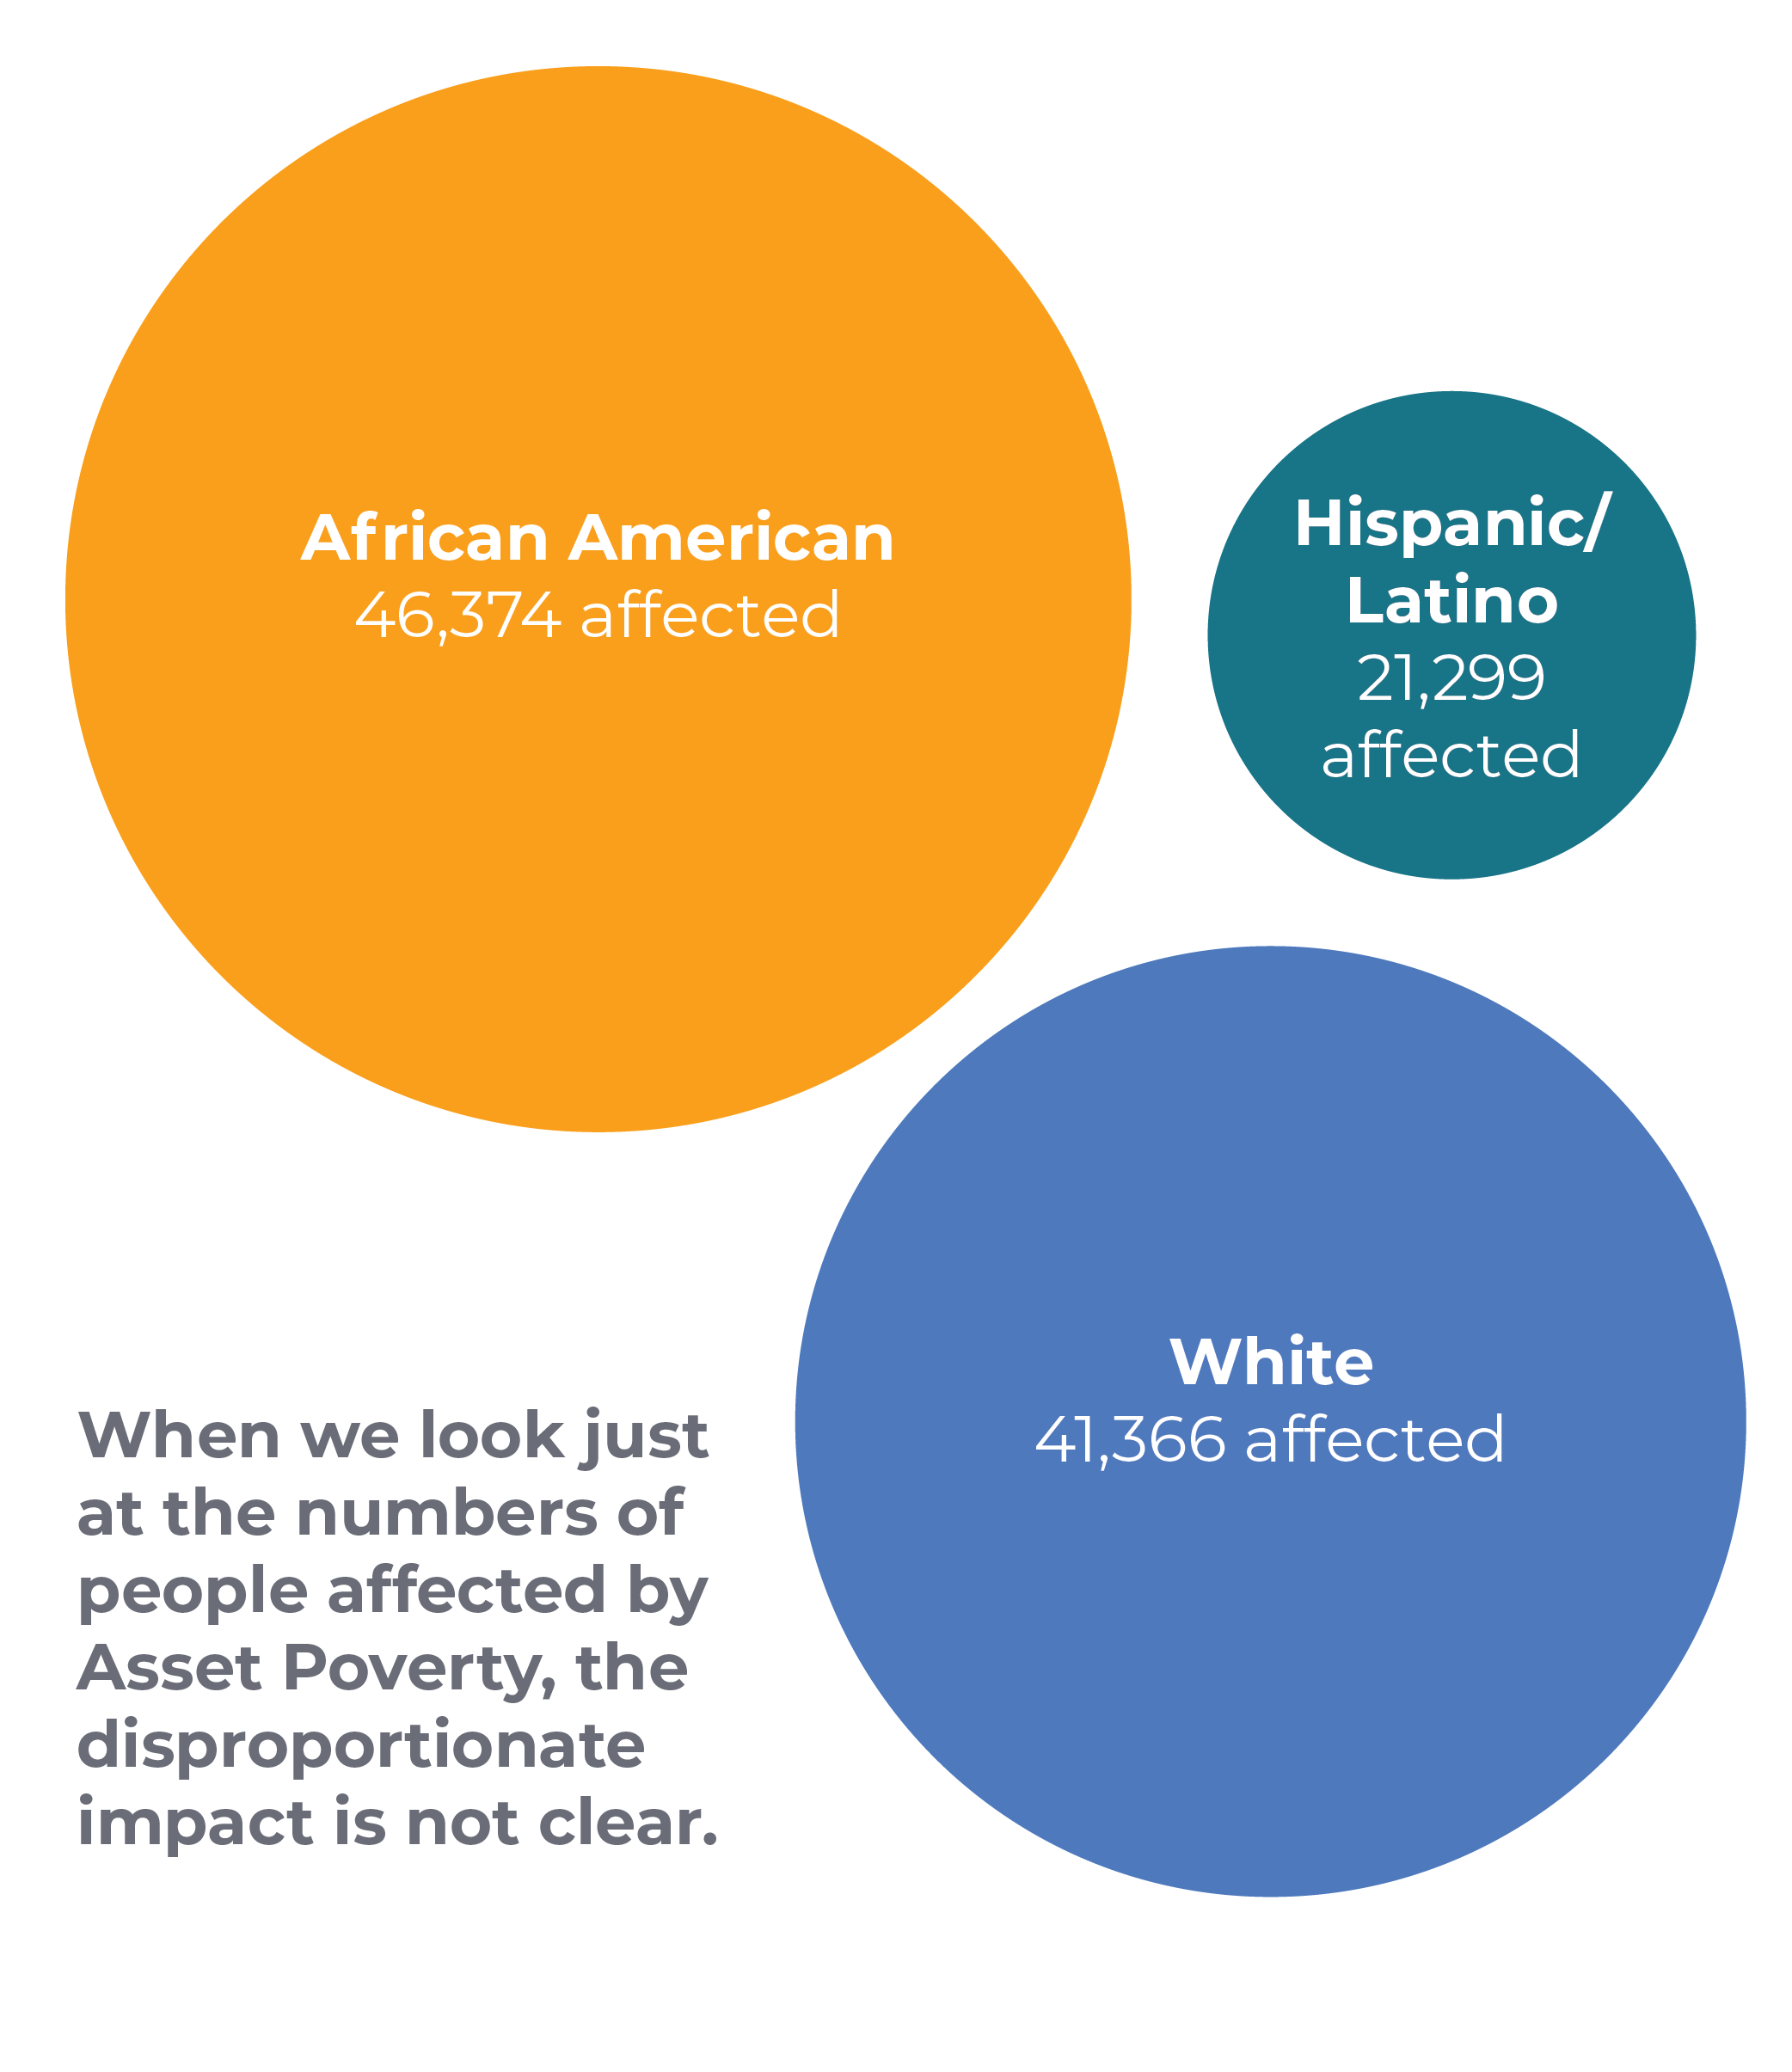 When we look just at the numbers of people affected by Asset Poverty, the disproportionate impact is not clear.